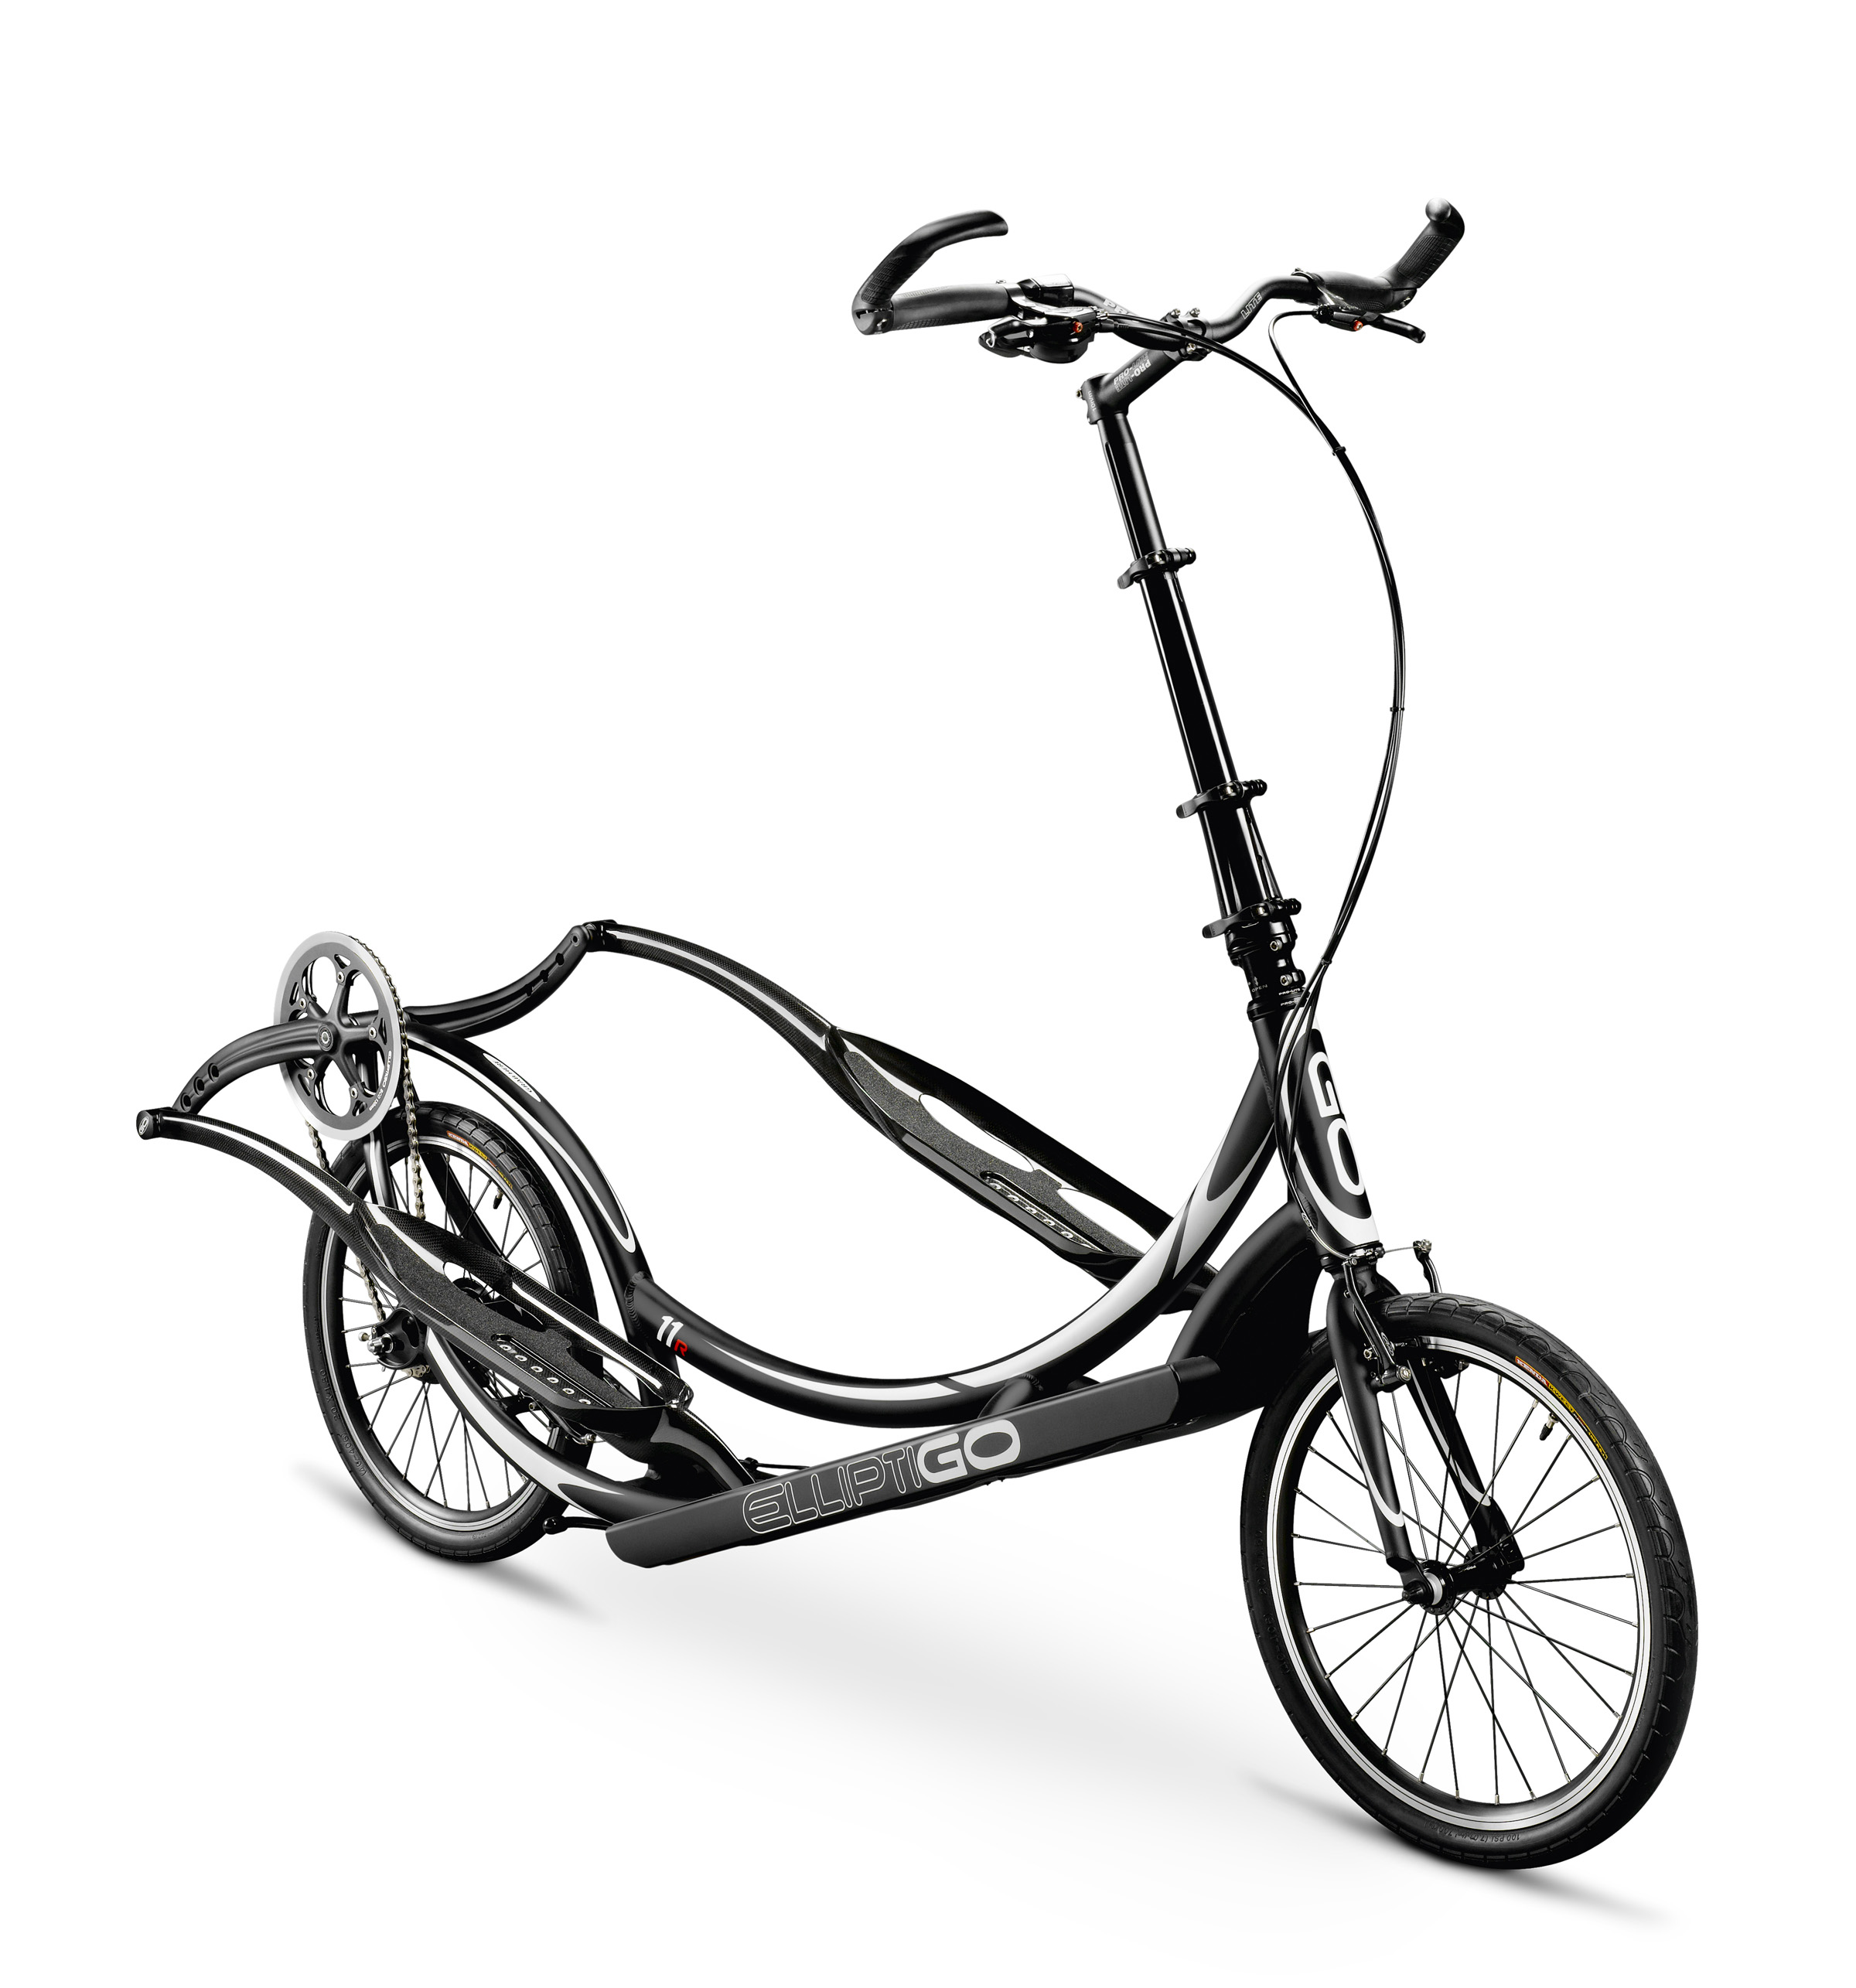 ElliptiGO Model 11R Elliptical Cycle